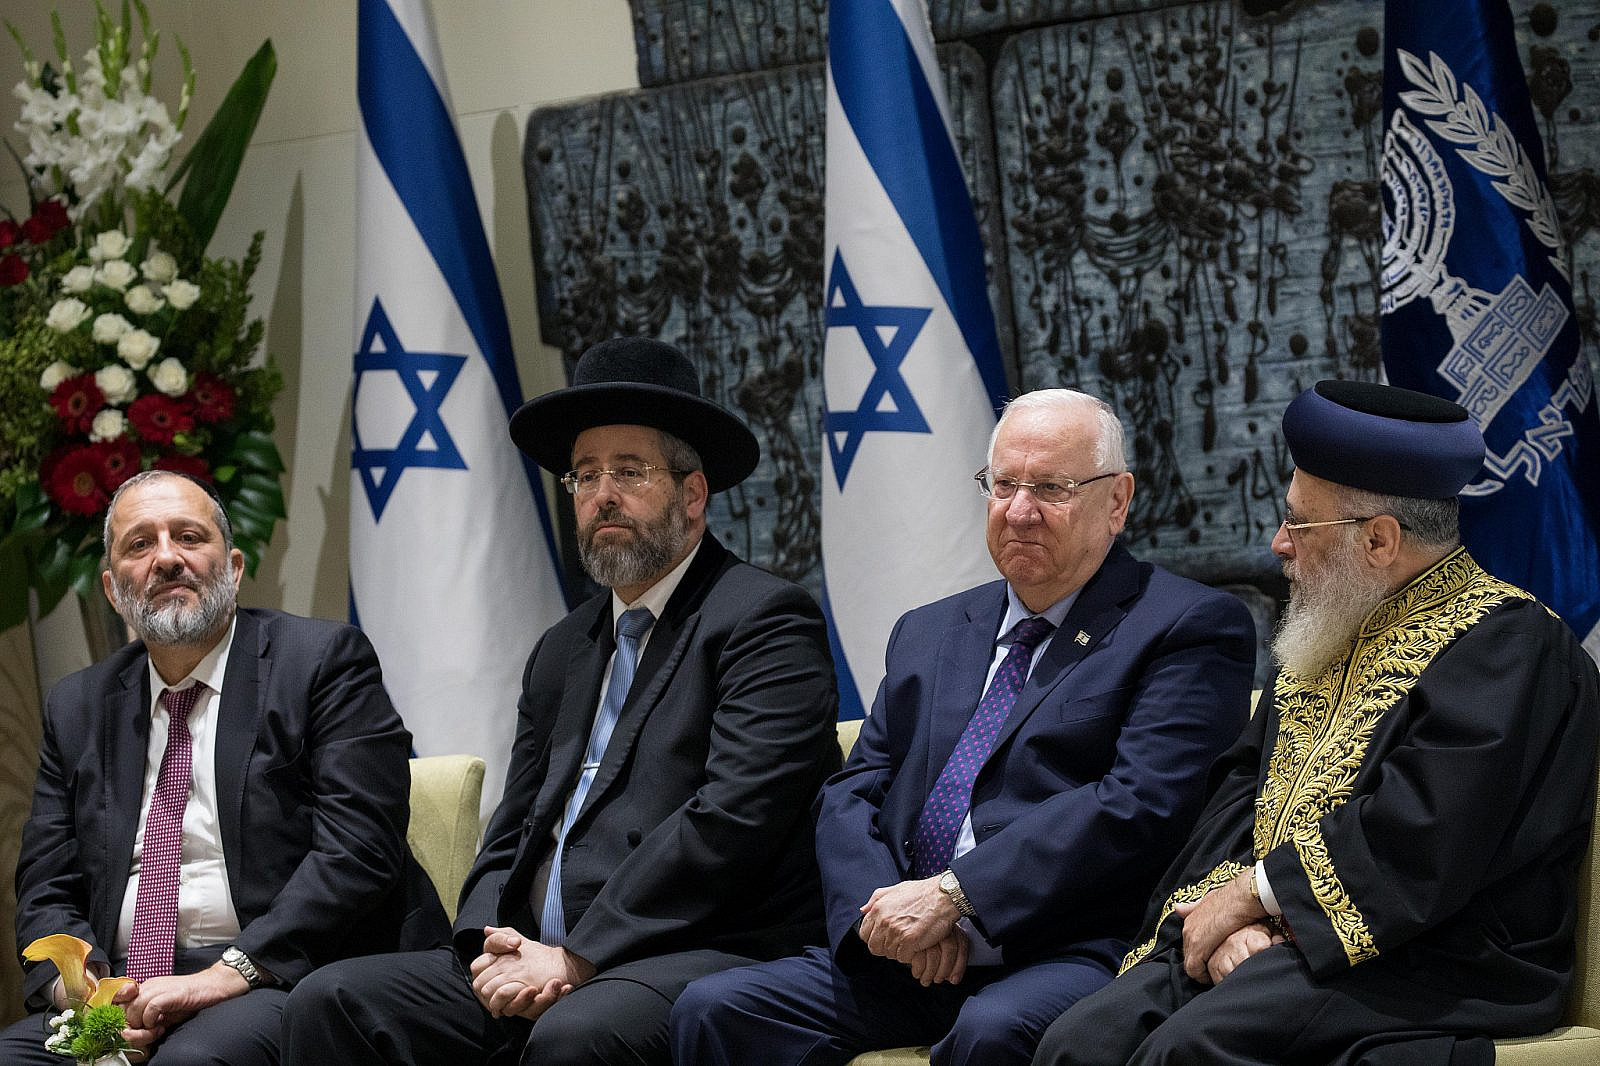 President Reuven Rivlin (center right) with Chief Ashkenazi Rabbi David Lau (center left), Sephardi Chief Rabbi Yitzhak Yosef (right) and Israeli Minister of Interior Affairs Aryeh Deri (left) at a swearing in ceremony for the Rabbinate Council at the President's residence in Jerusalem, October 24, 2018. (Yonatan Sindel/Flash90)